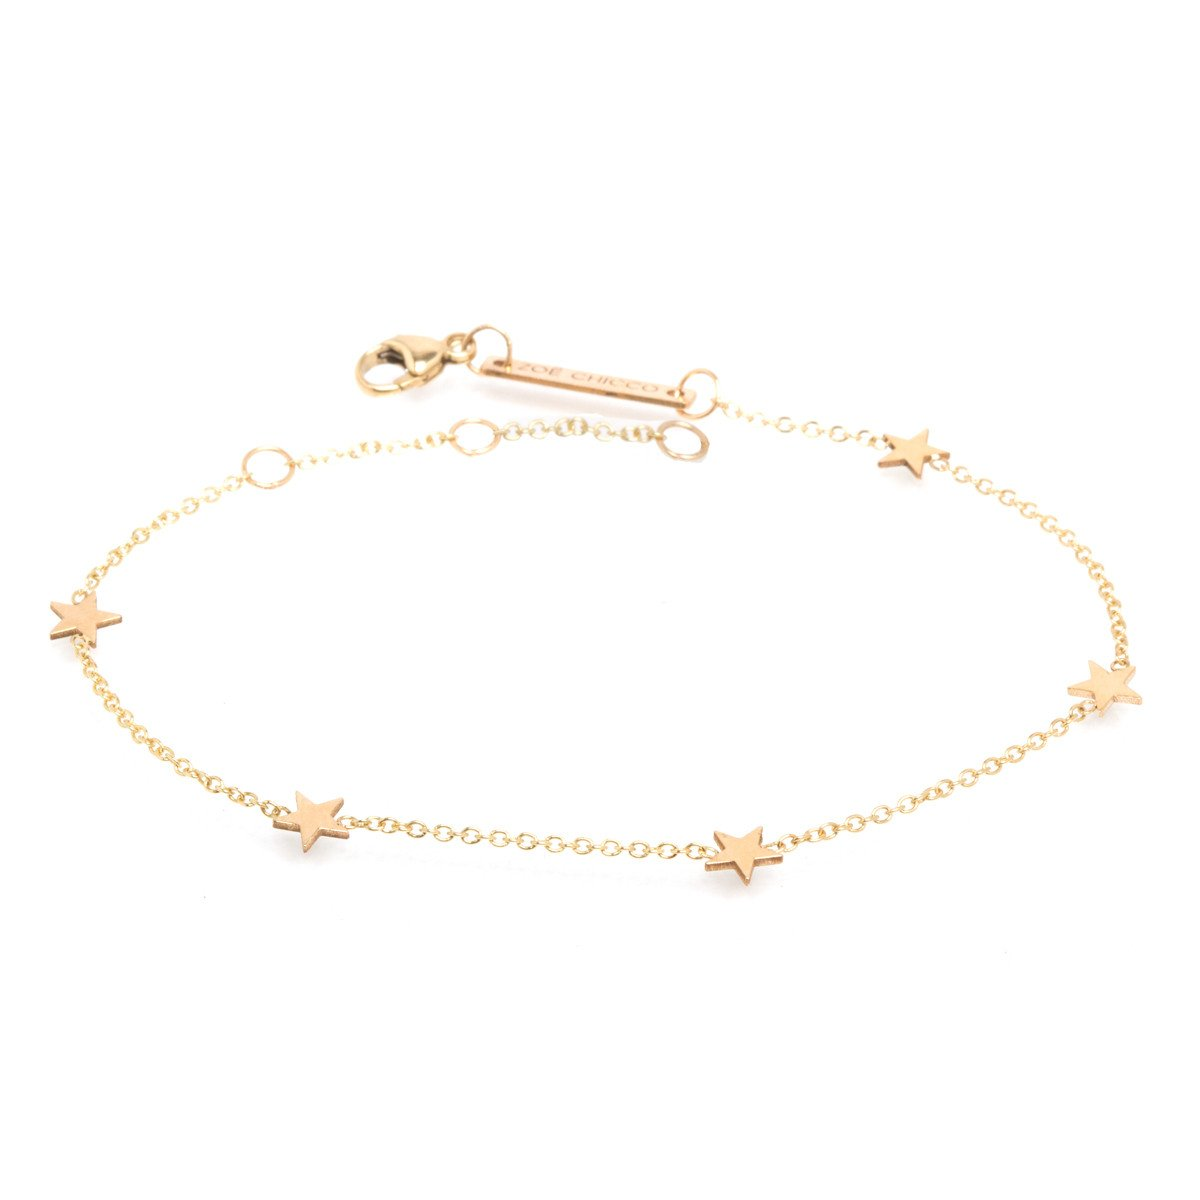 Zoe Chicco 14k itty bitty five star bracelet